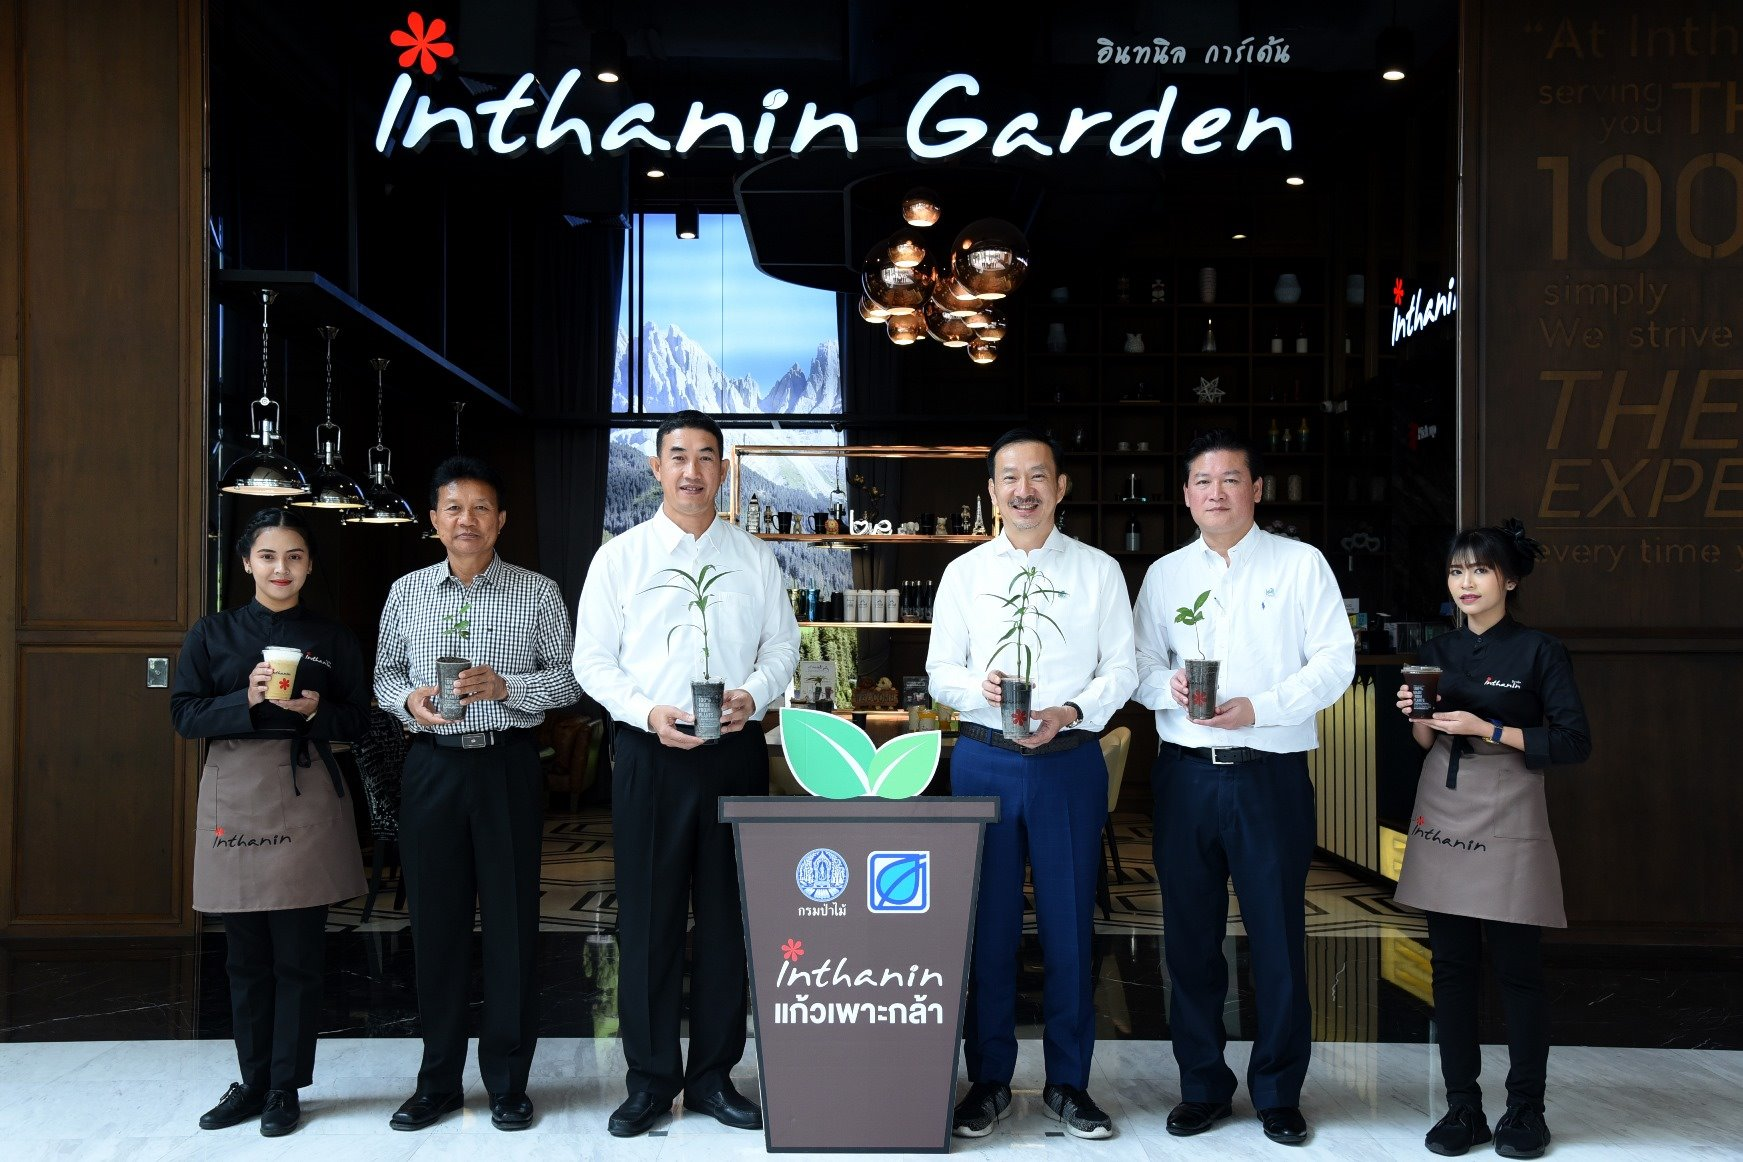 """Bangchak Celebrates 123rd Anniversary of Royal Forest Department with """"Cup Recycling for Seedlings"""" Project; Encourages Customers to Donate Used Biodegradable Cups to Help Curb Plastic Usage"""